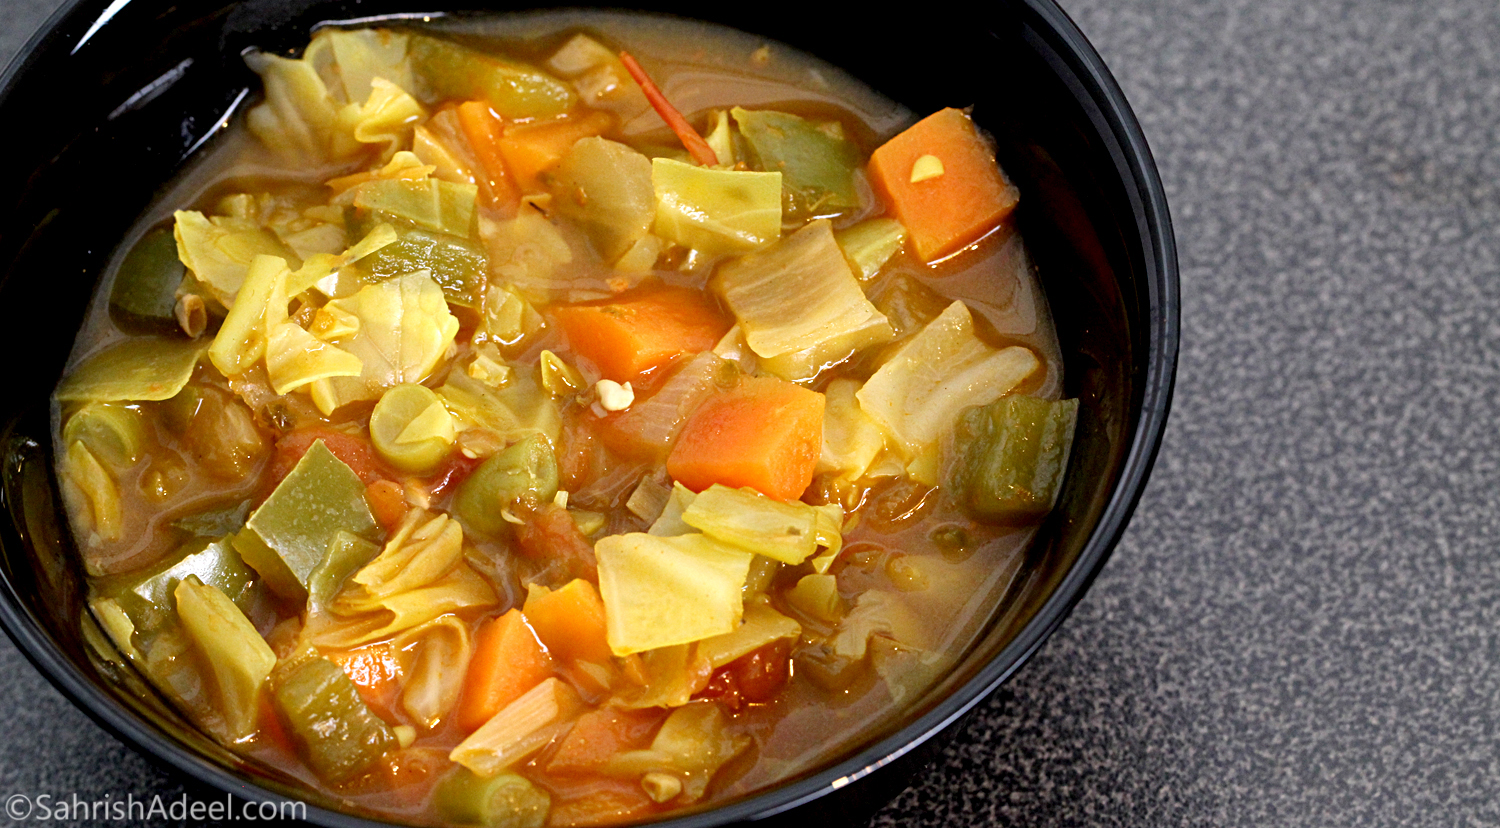 Cabbage Soup Recipe - One That Is Really Yummy - Cabbage Soup Diet